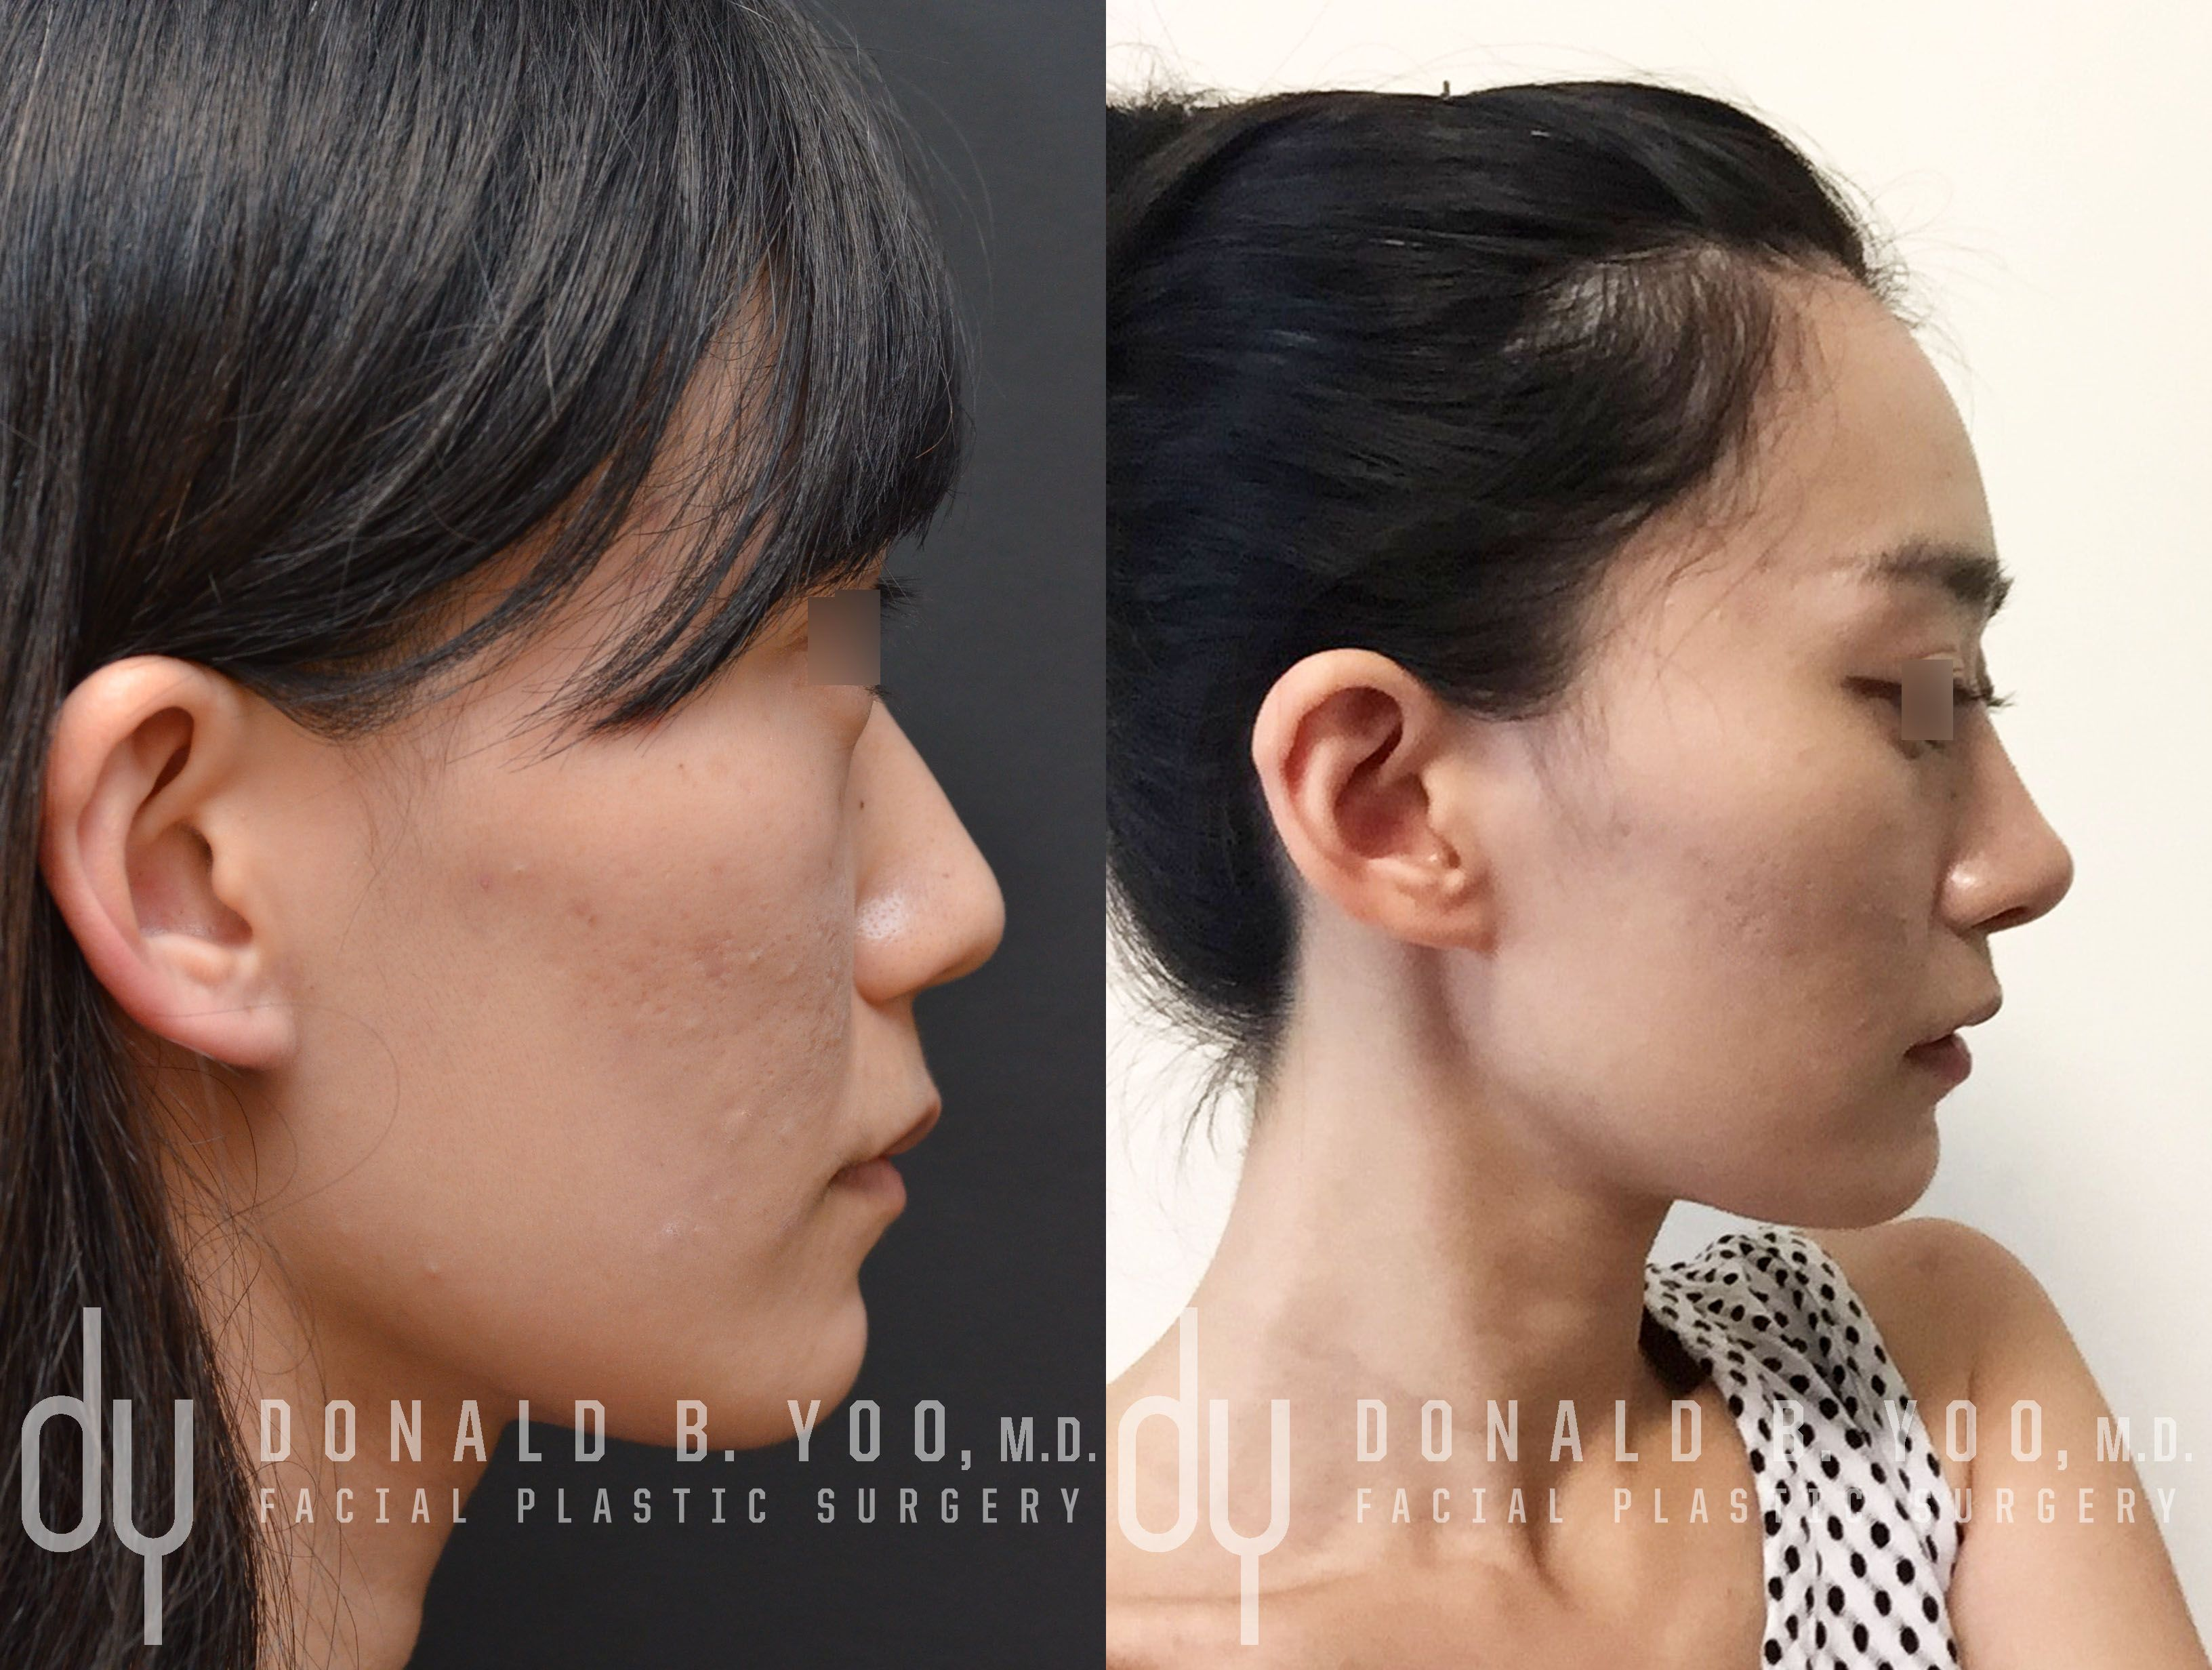 Before And After Primary Asian Rhinoplasty The Patient Underwent Rib Cartilage Harvest Diced Cartilage Fasc Facial Plastic Surgery Rhinoplasty Facial Plastic